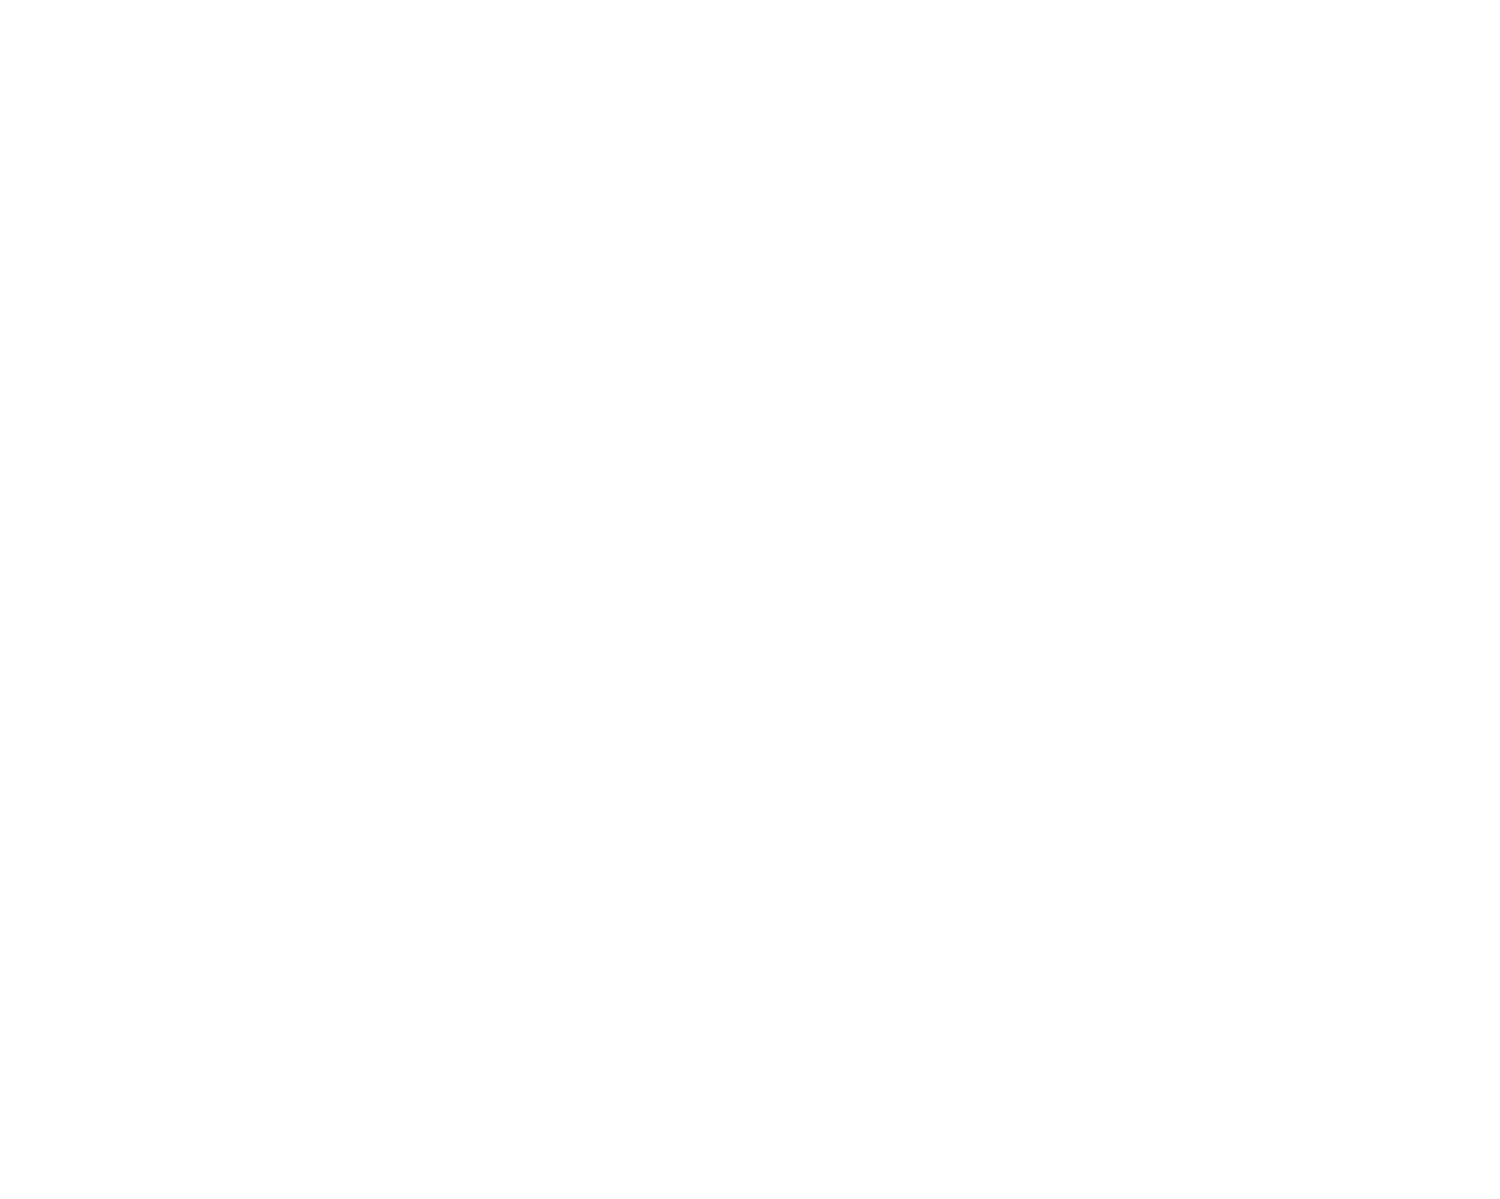 Sierra Nevada Revolution